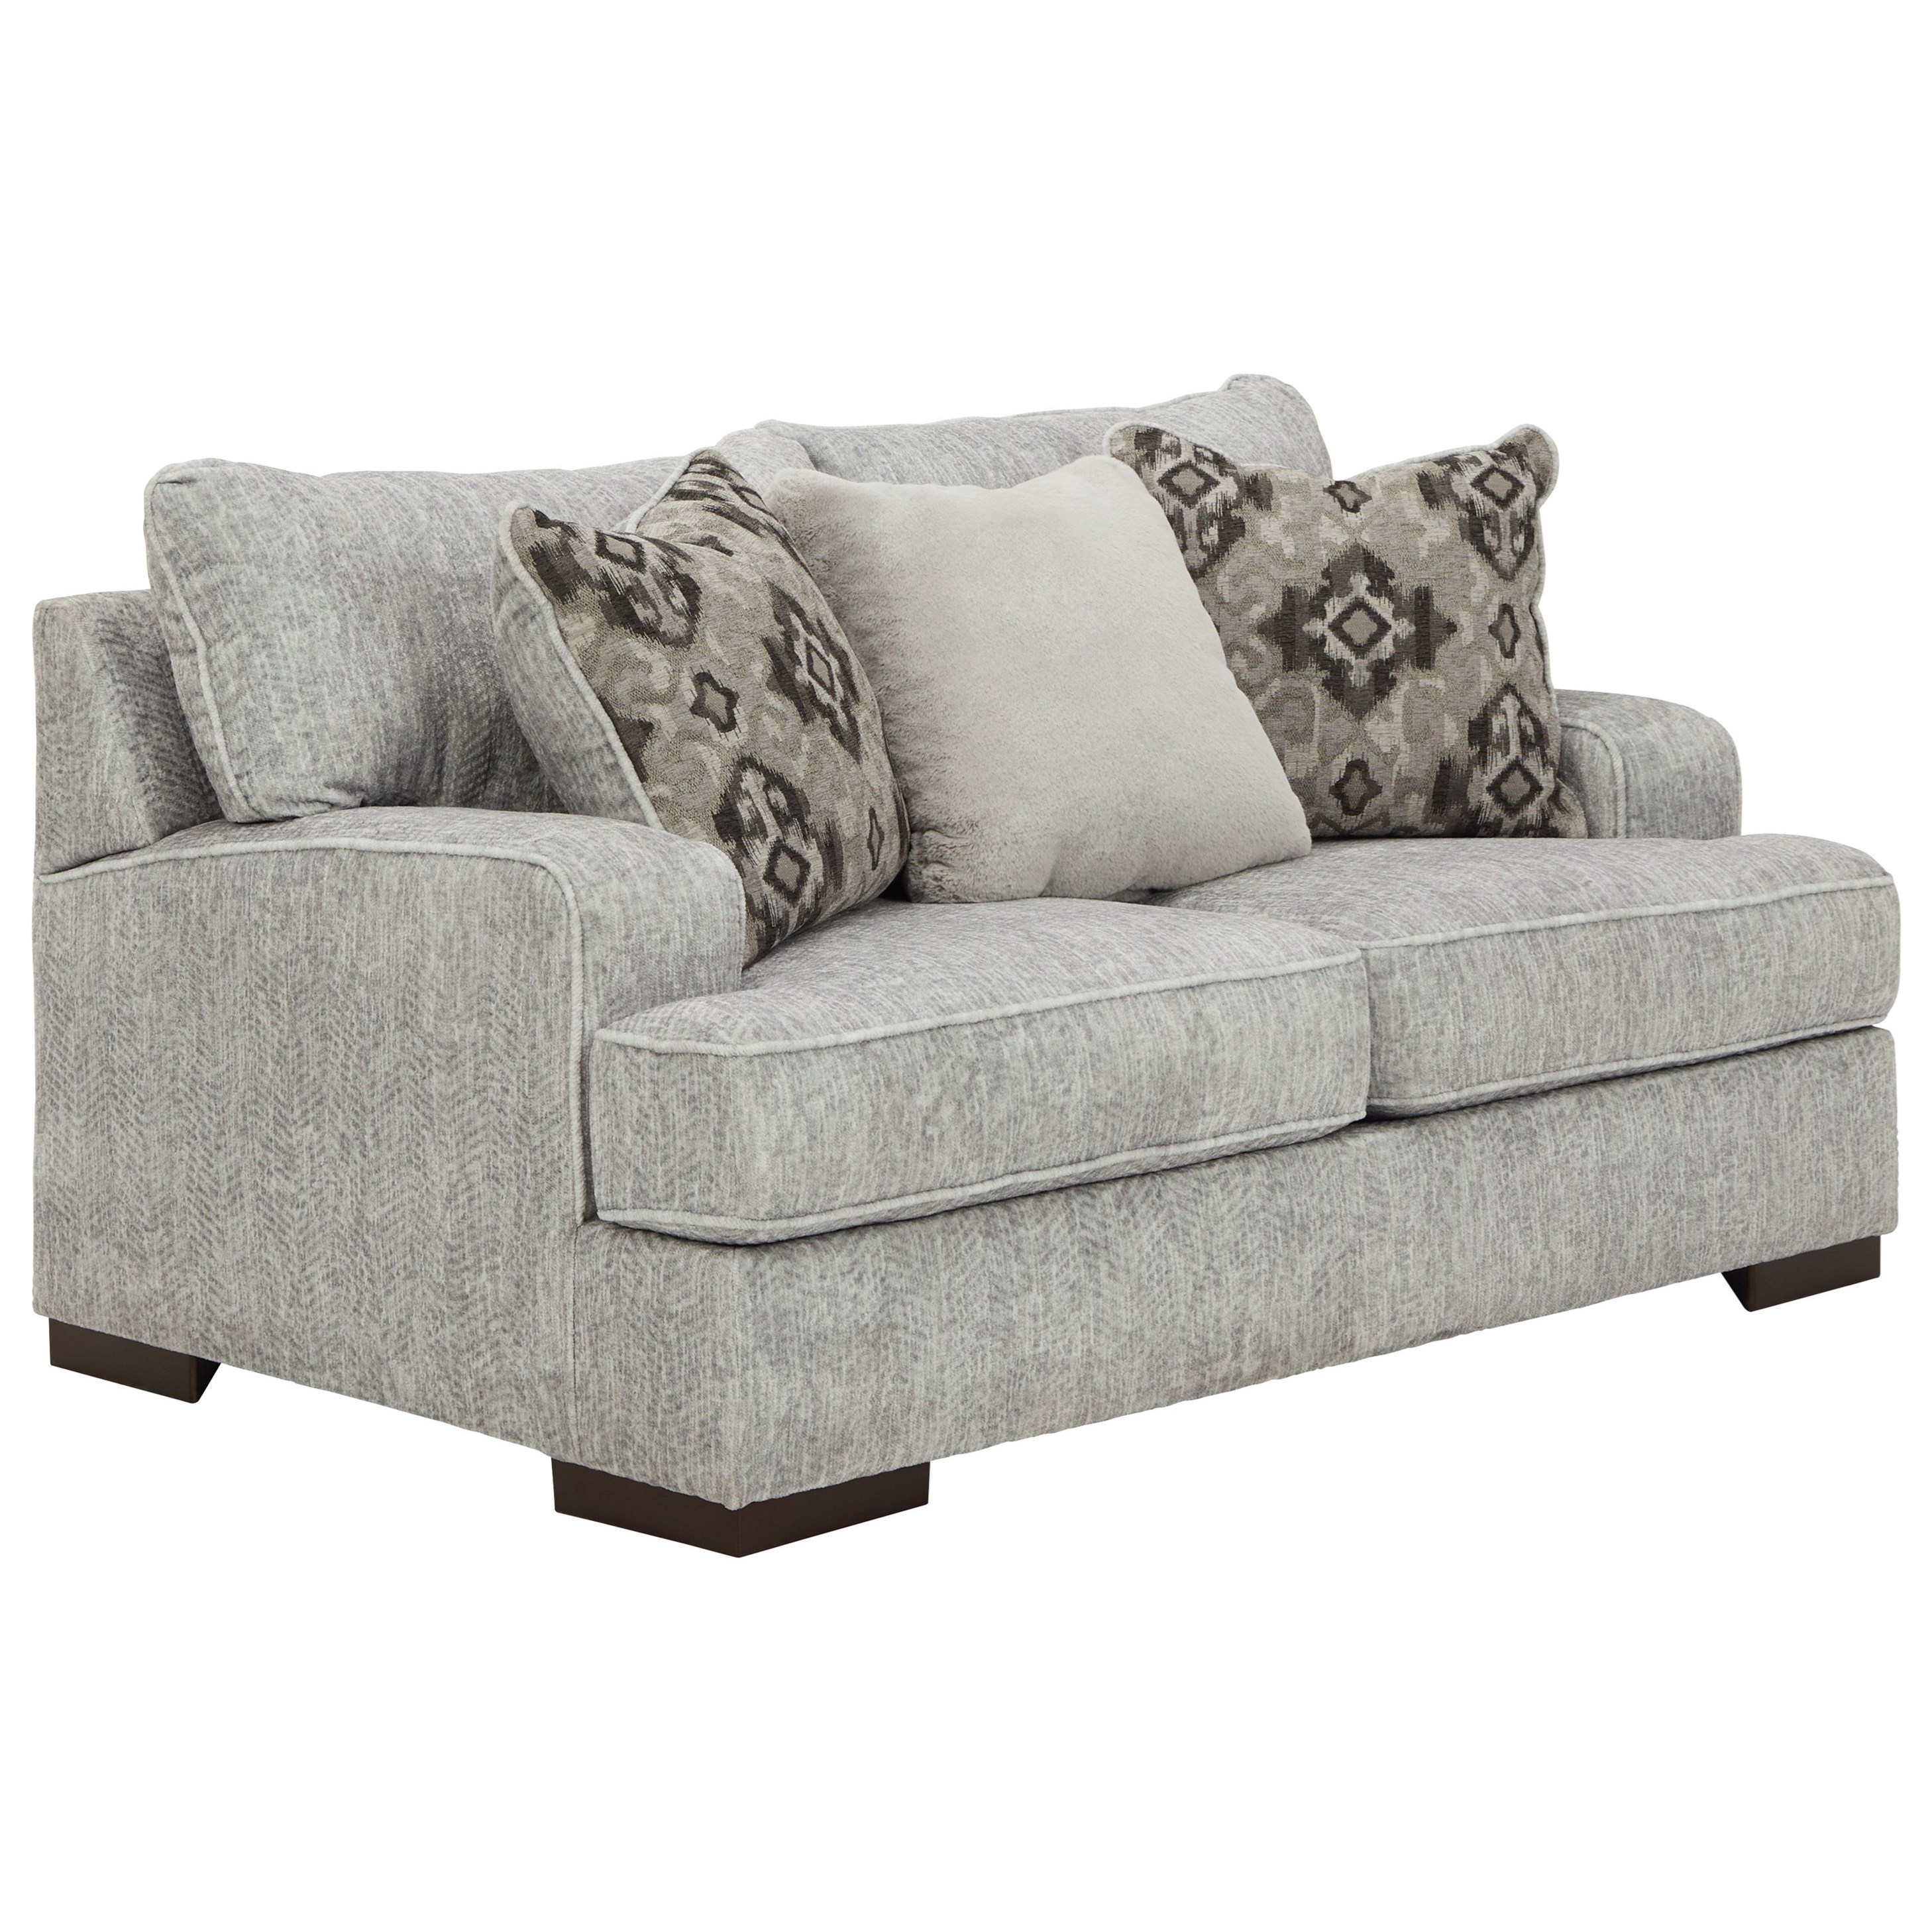 Mercado Loveseat by Benchcraft at Beck's Furniture